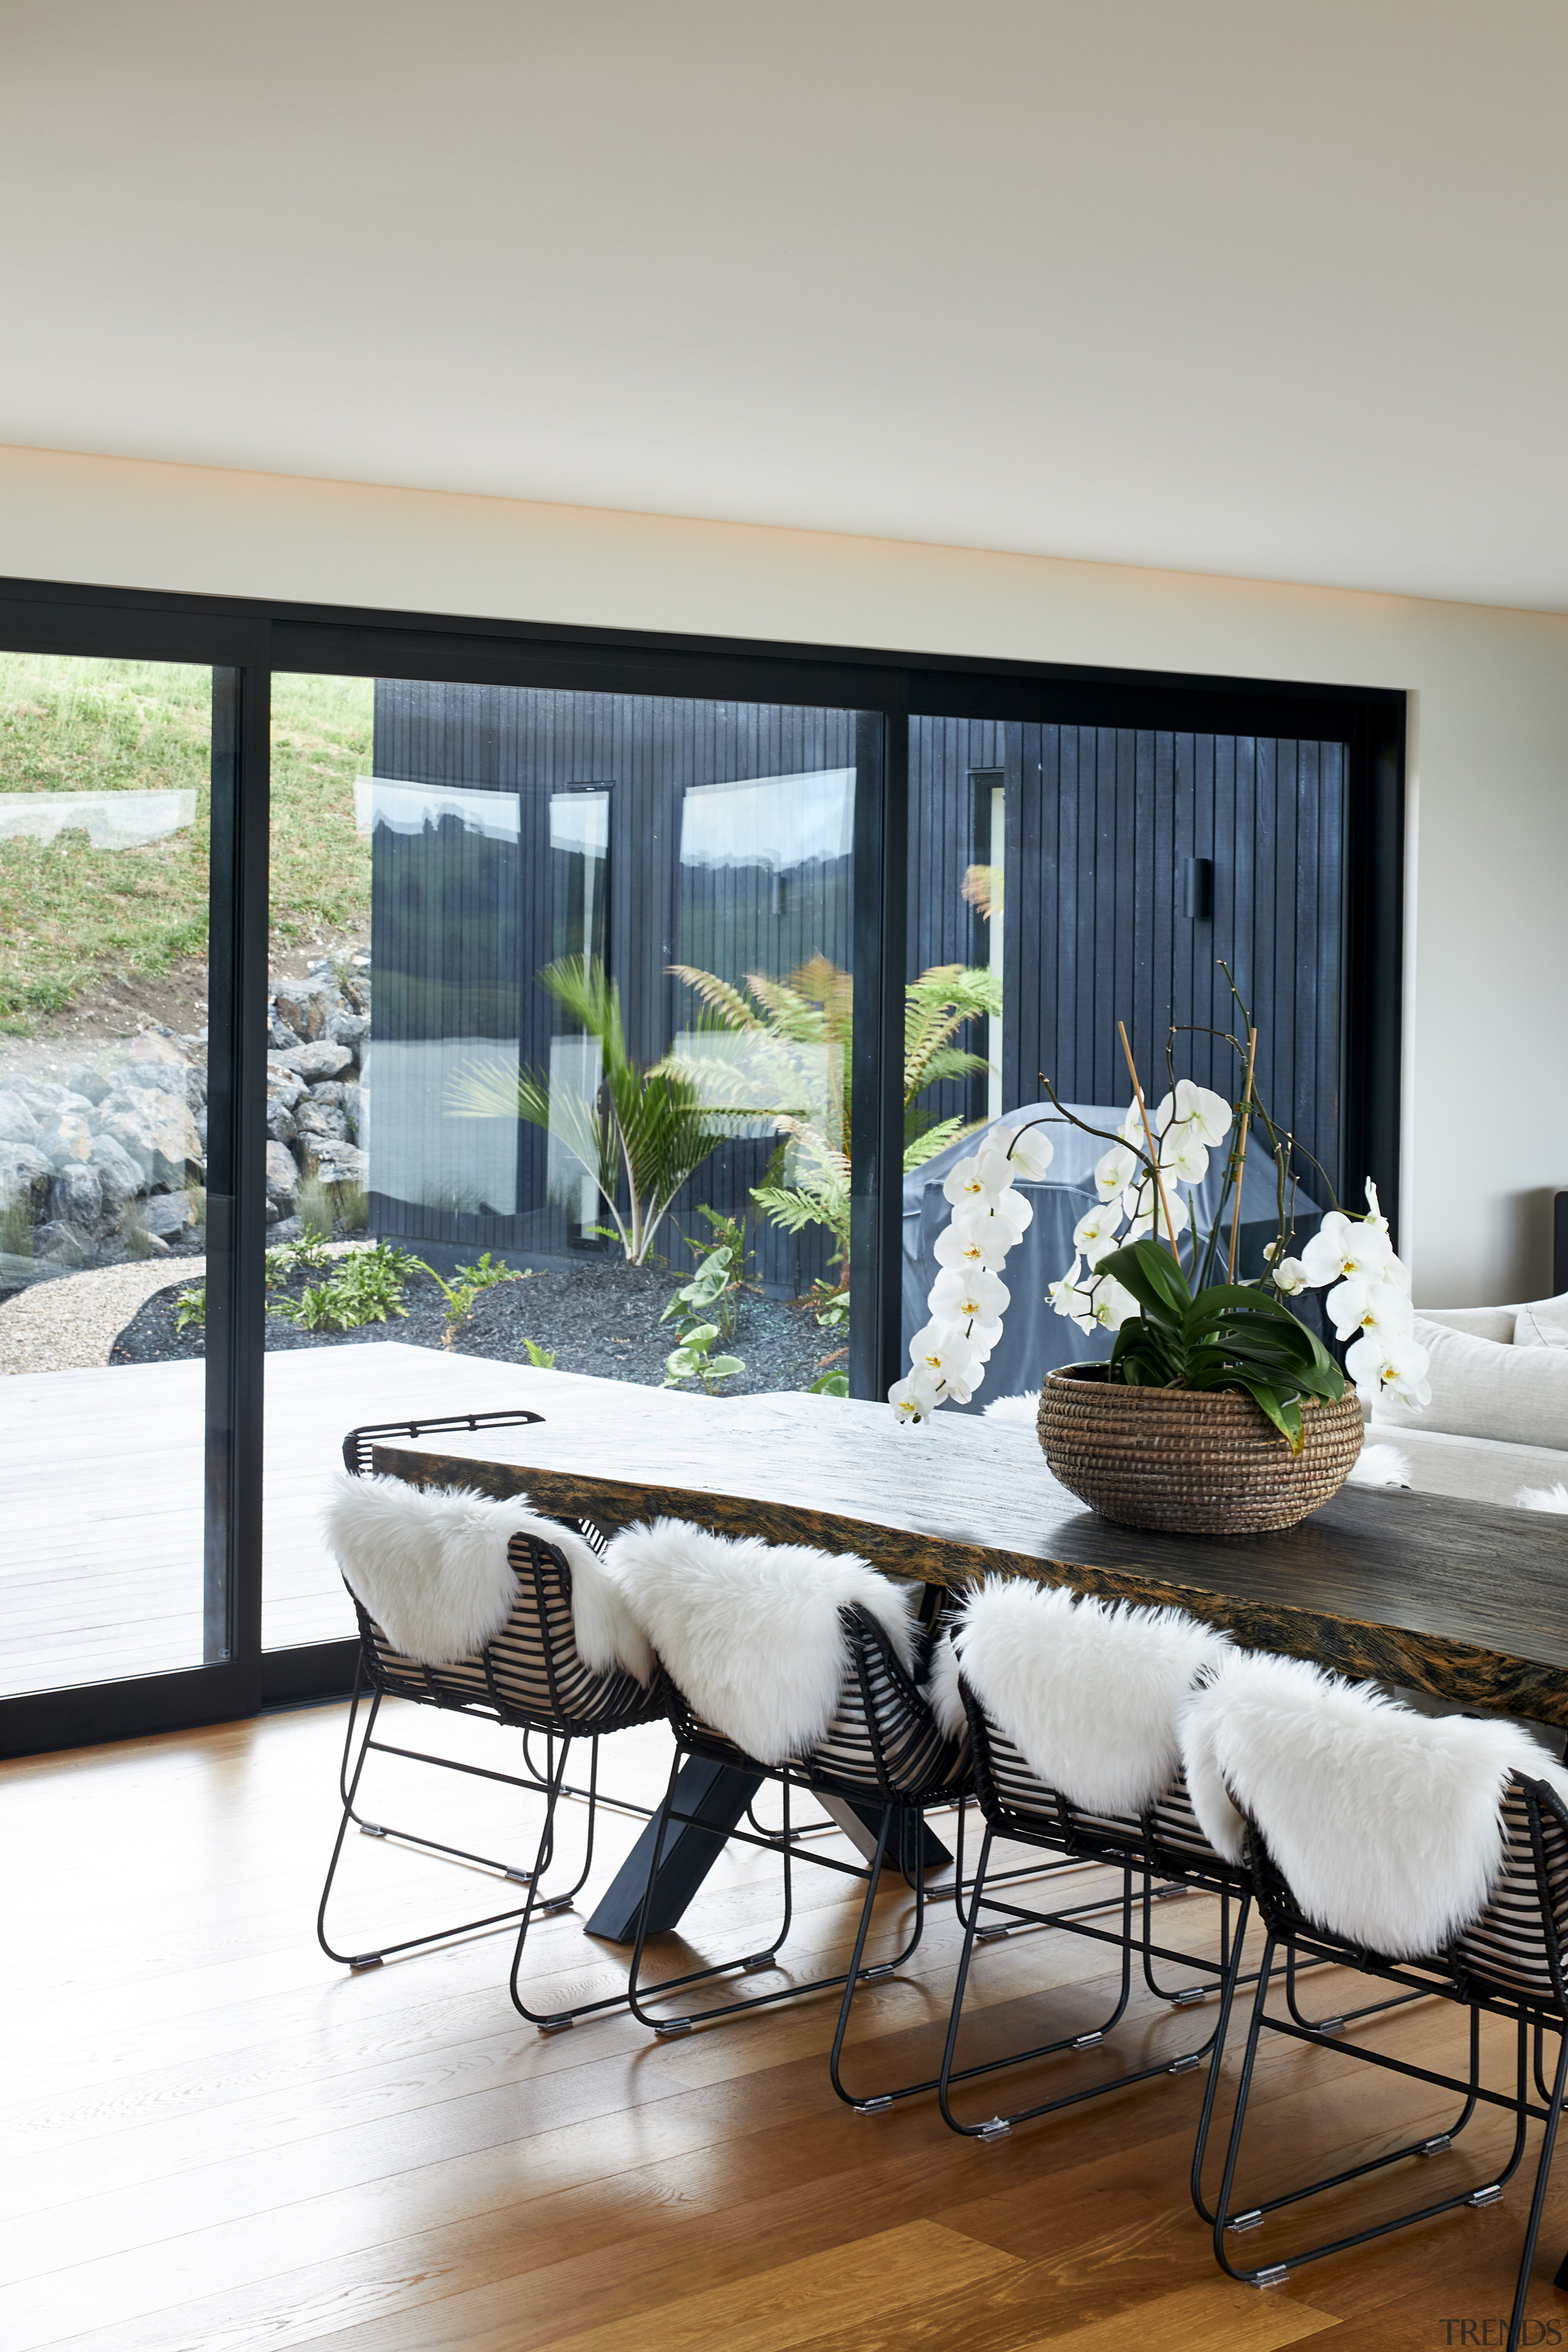 The choice of black window joinery helps frame